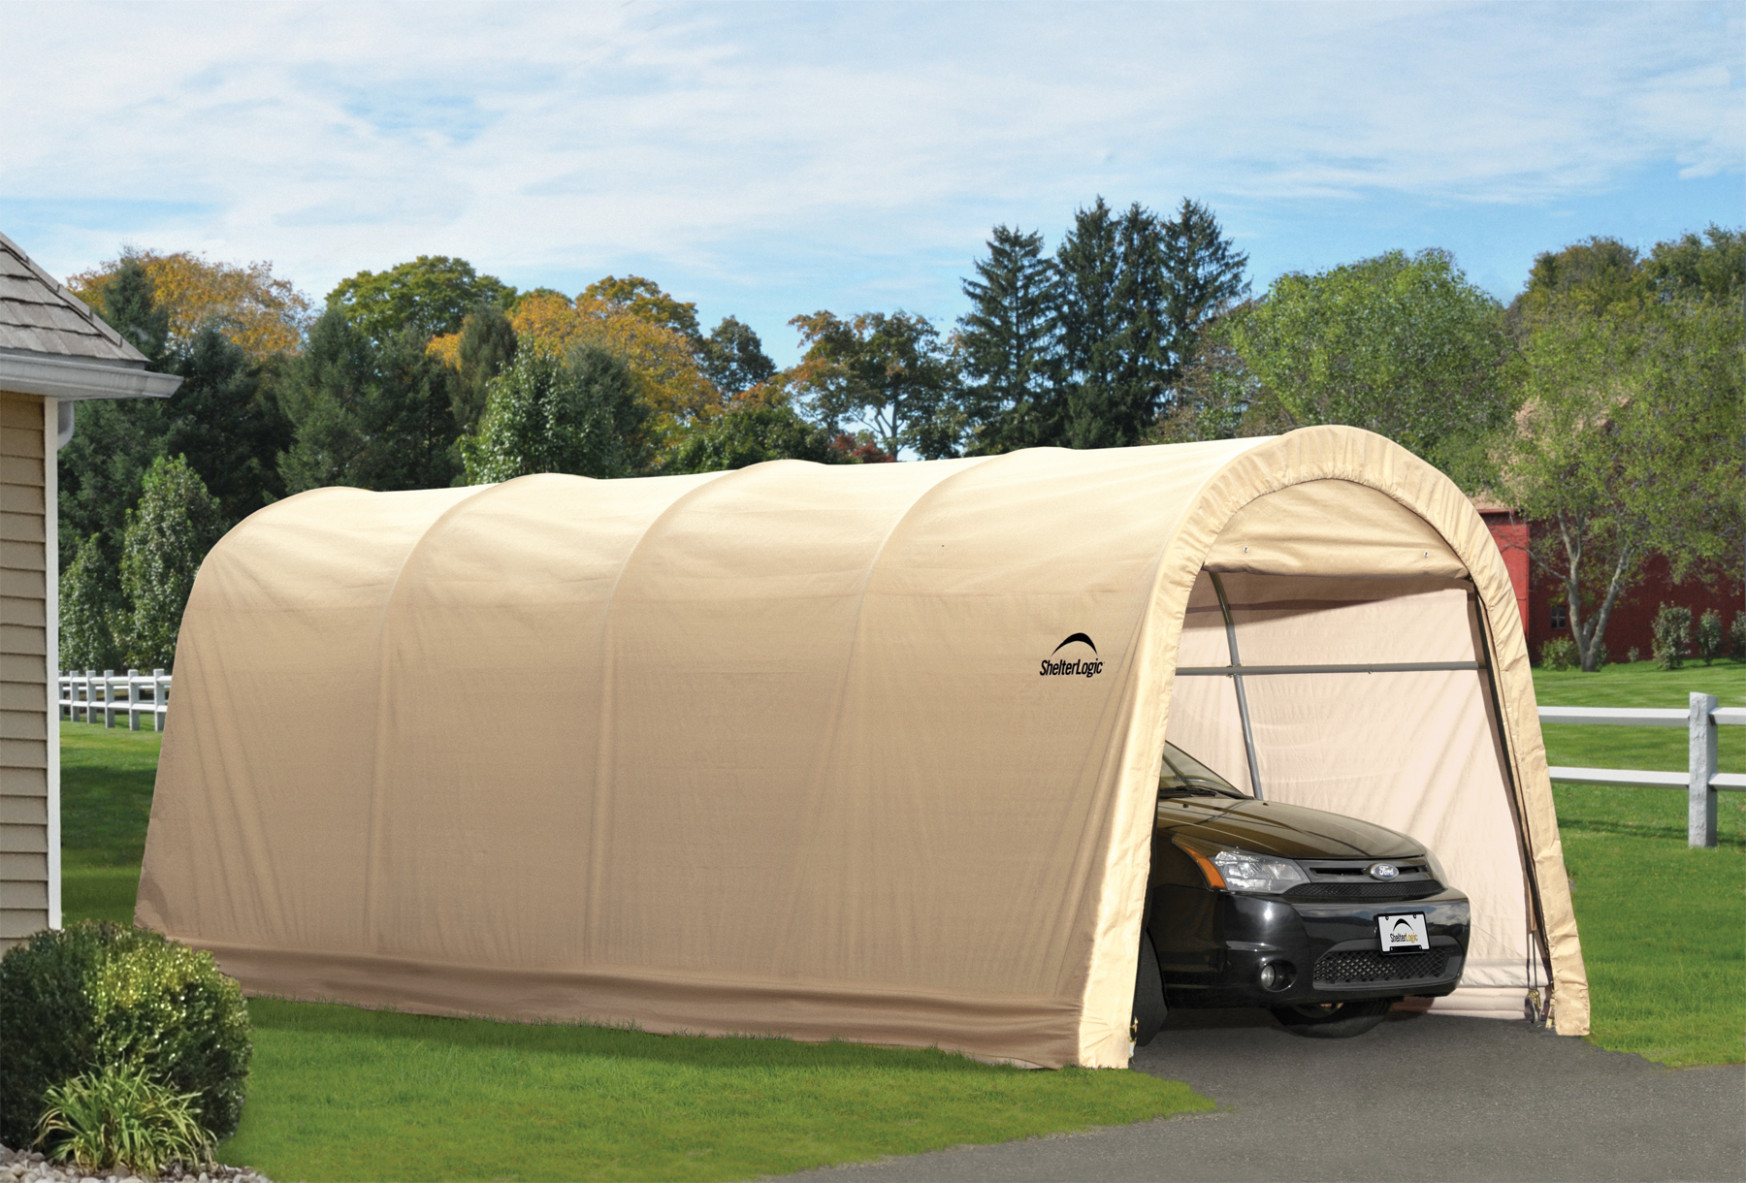 Ideas Carport Canopy — Home Decor By Coppercreekgroup Temporary Carport Ideas